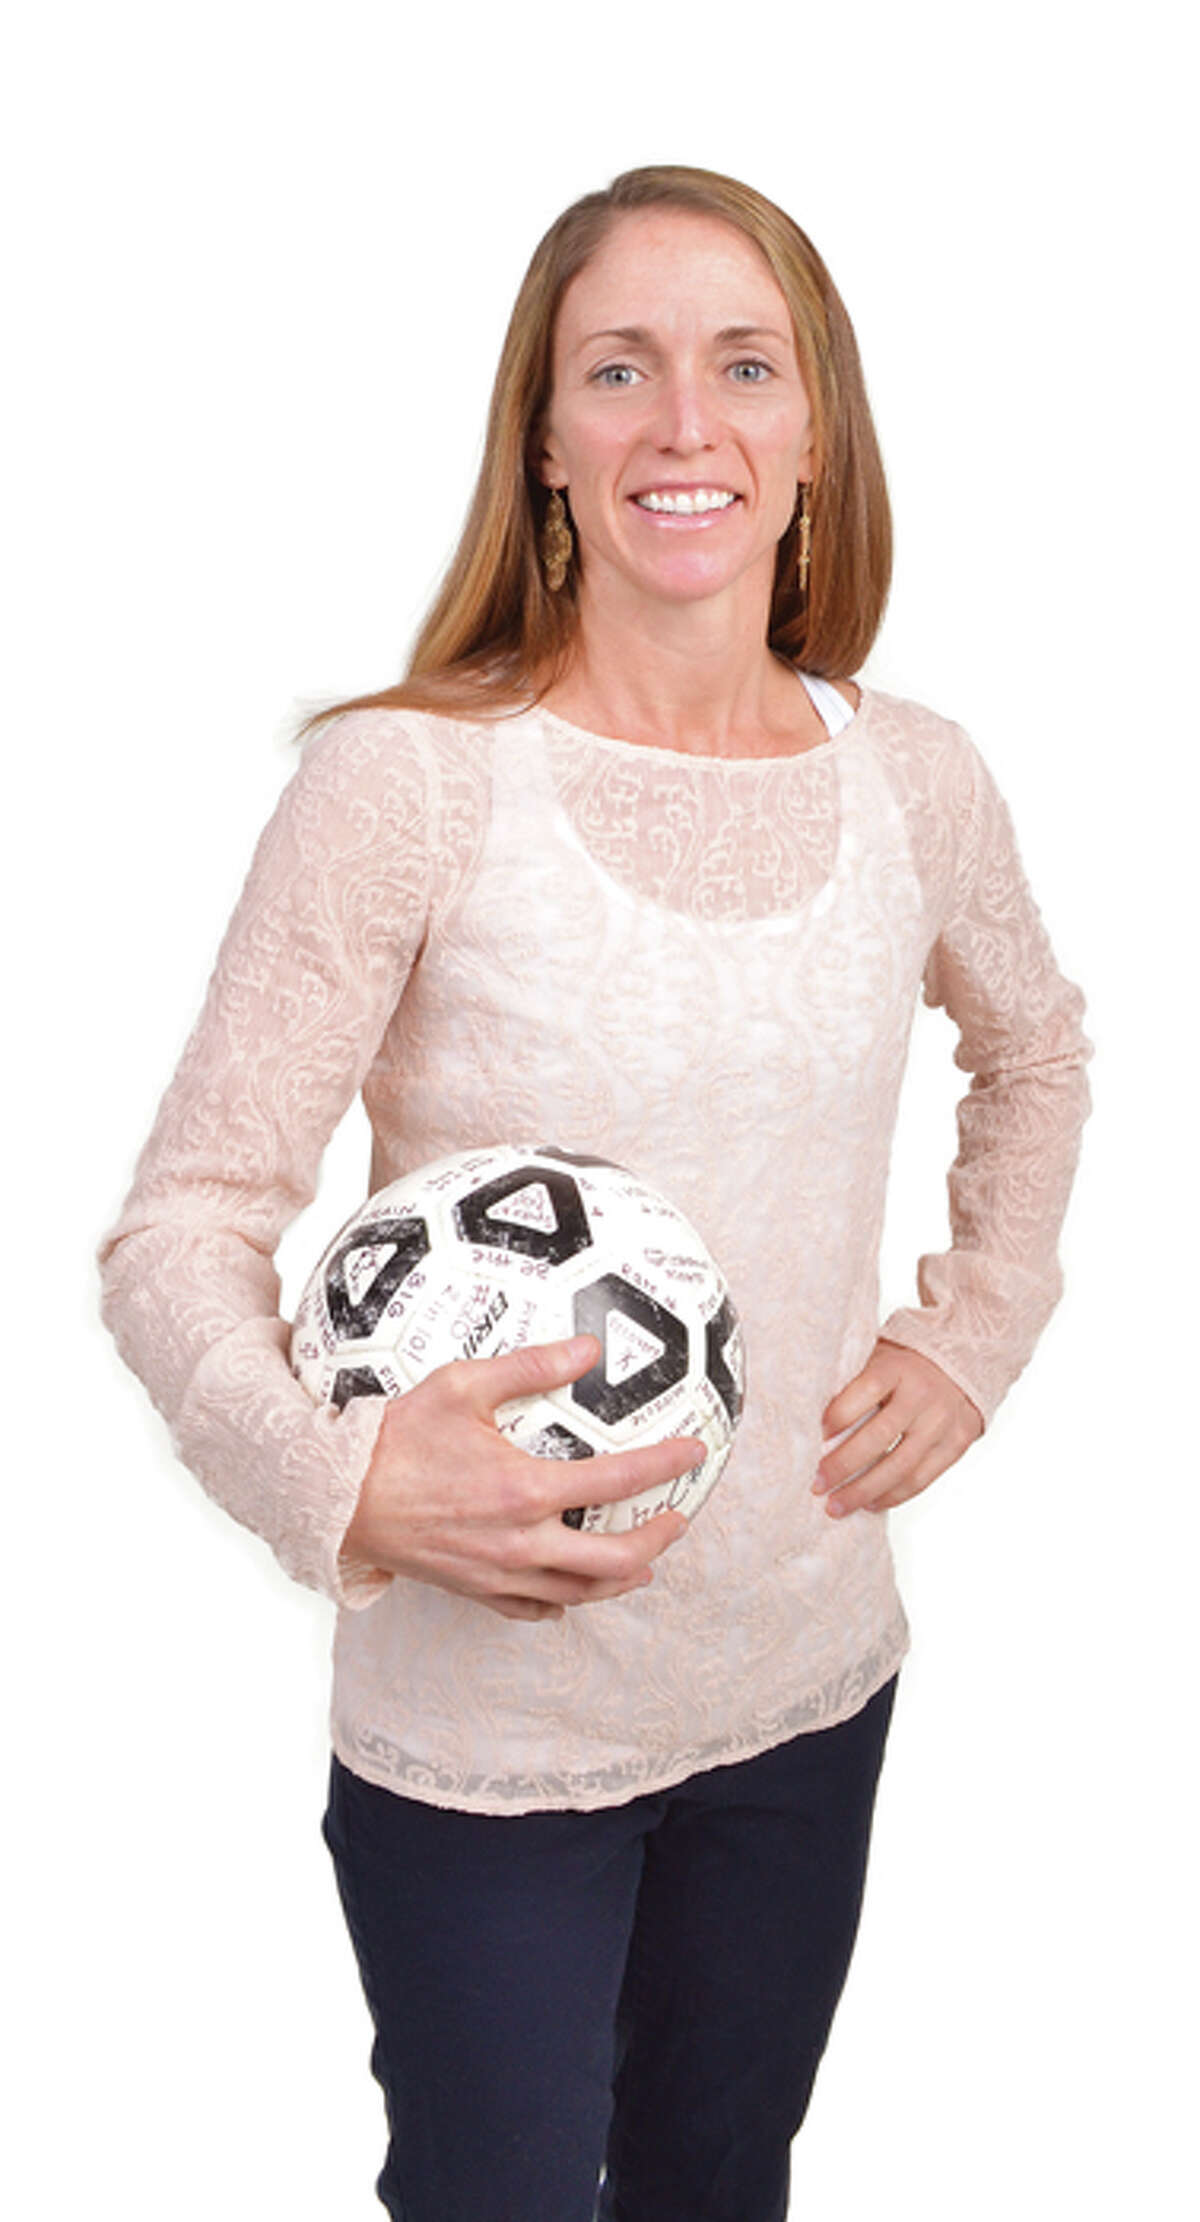 Holli L. Nirsberger, Physical Education Teacher, Varsity Girls Soccer Coach at Shenendehowa Central Schools. She holds the game ball that has each point scored by the team written on it.